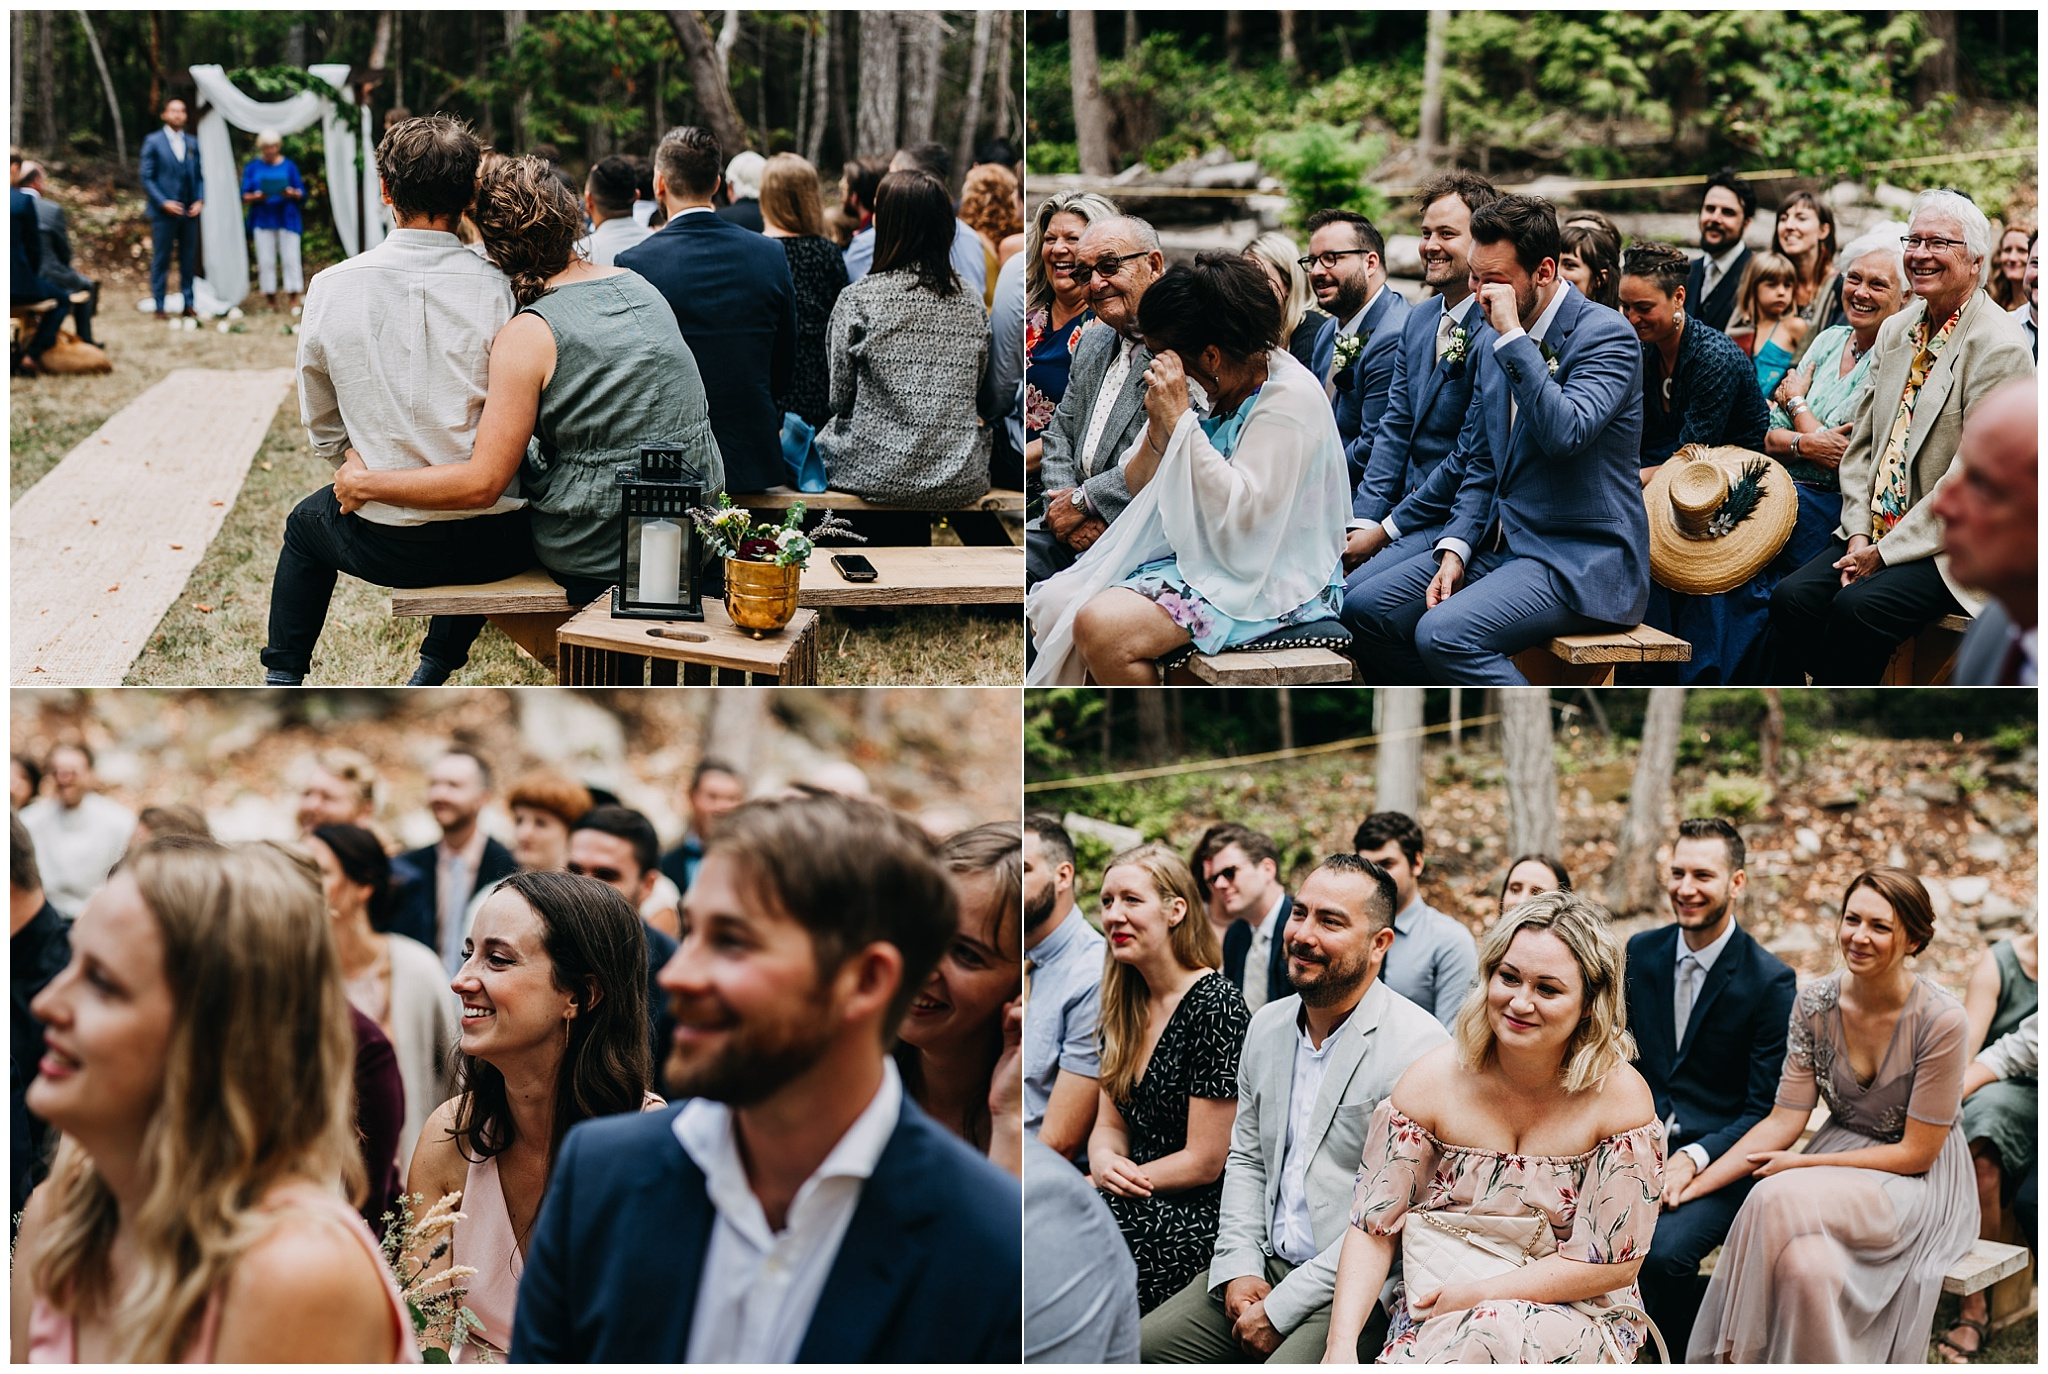 guests reaction at unplugged ceremony at intimate mayne island backyard wedding